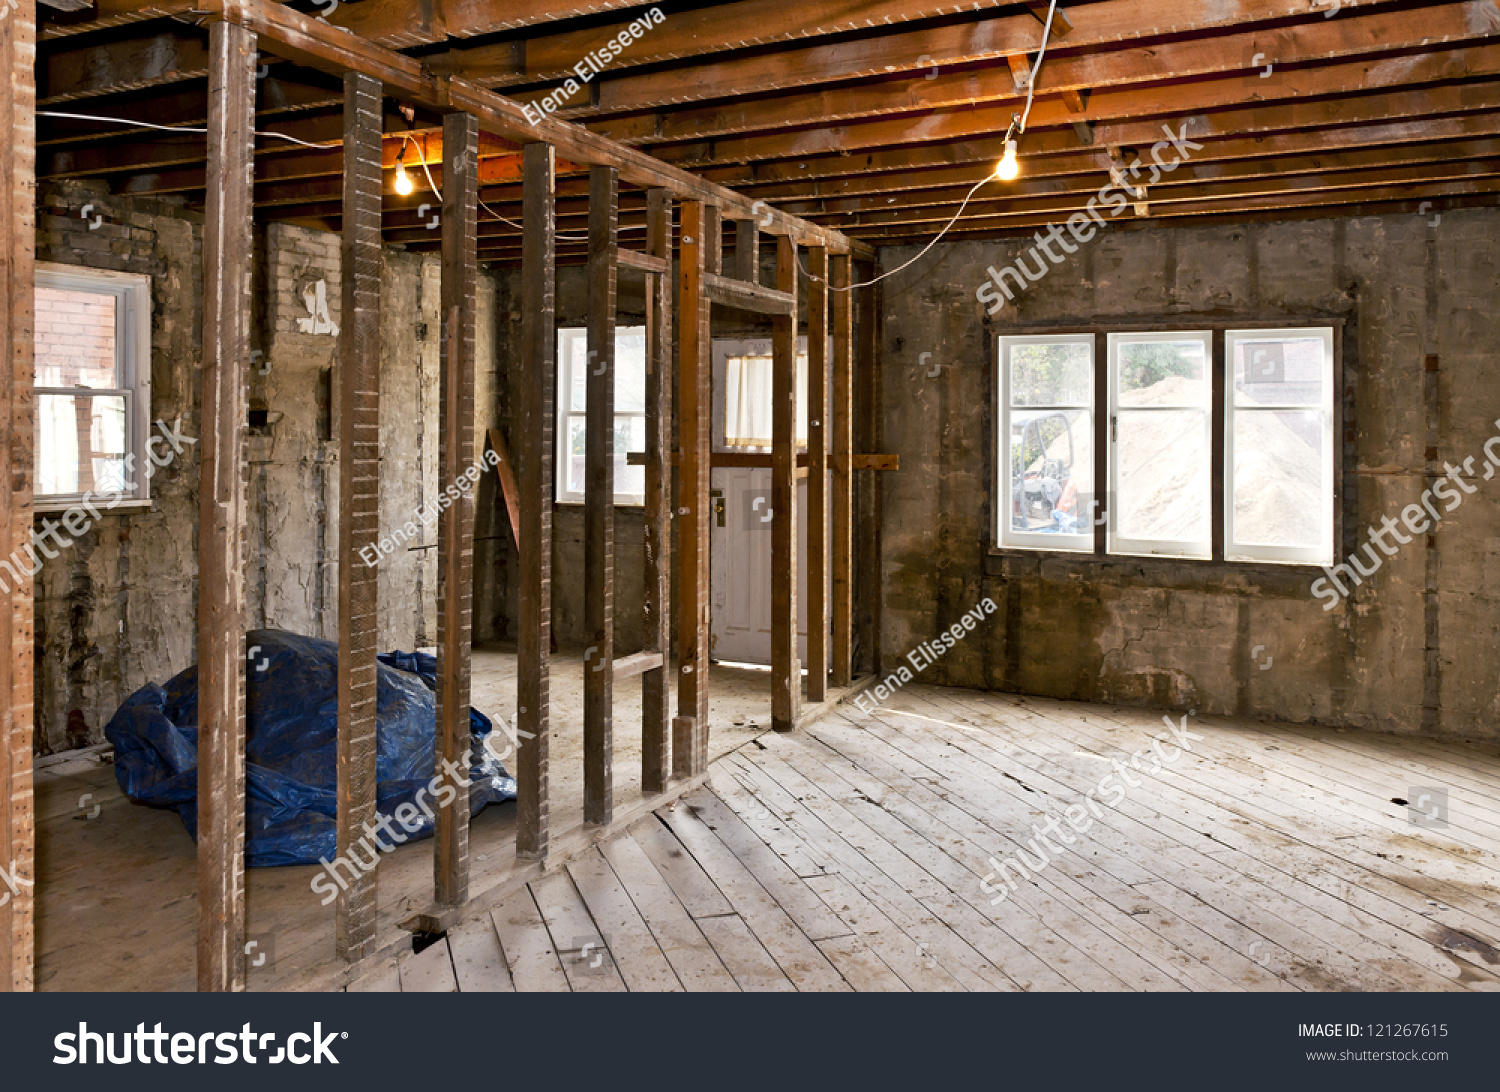 Interior house under gut renovation construction stock for Interior site